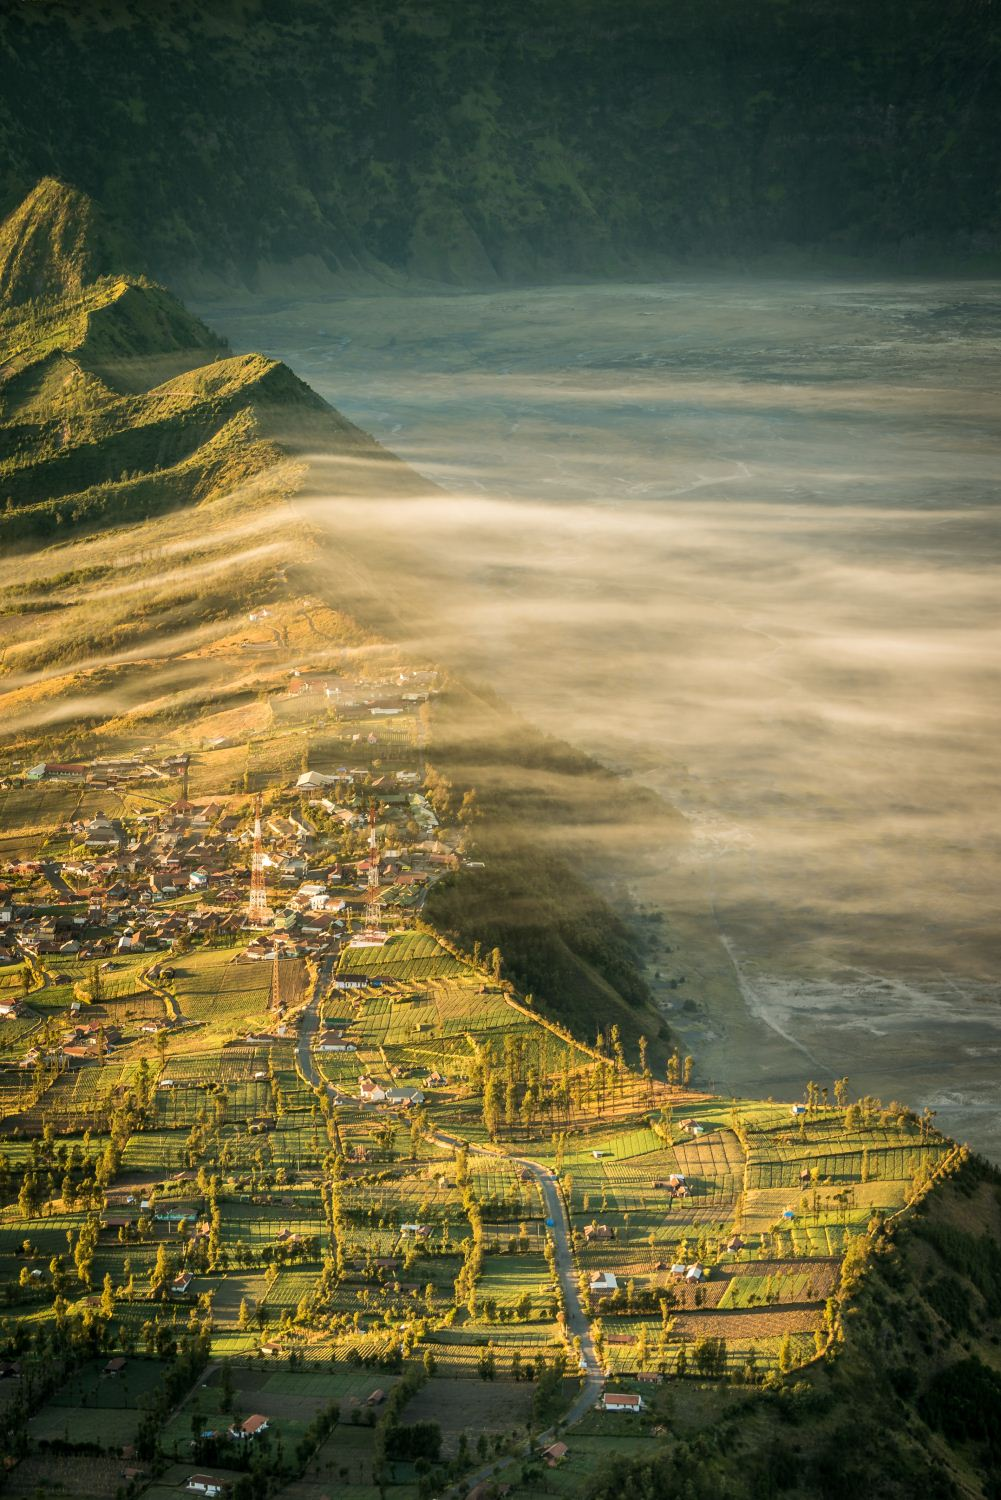 Crater Views, Cemoro Lawang, Bromo, Java, Indonesia